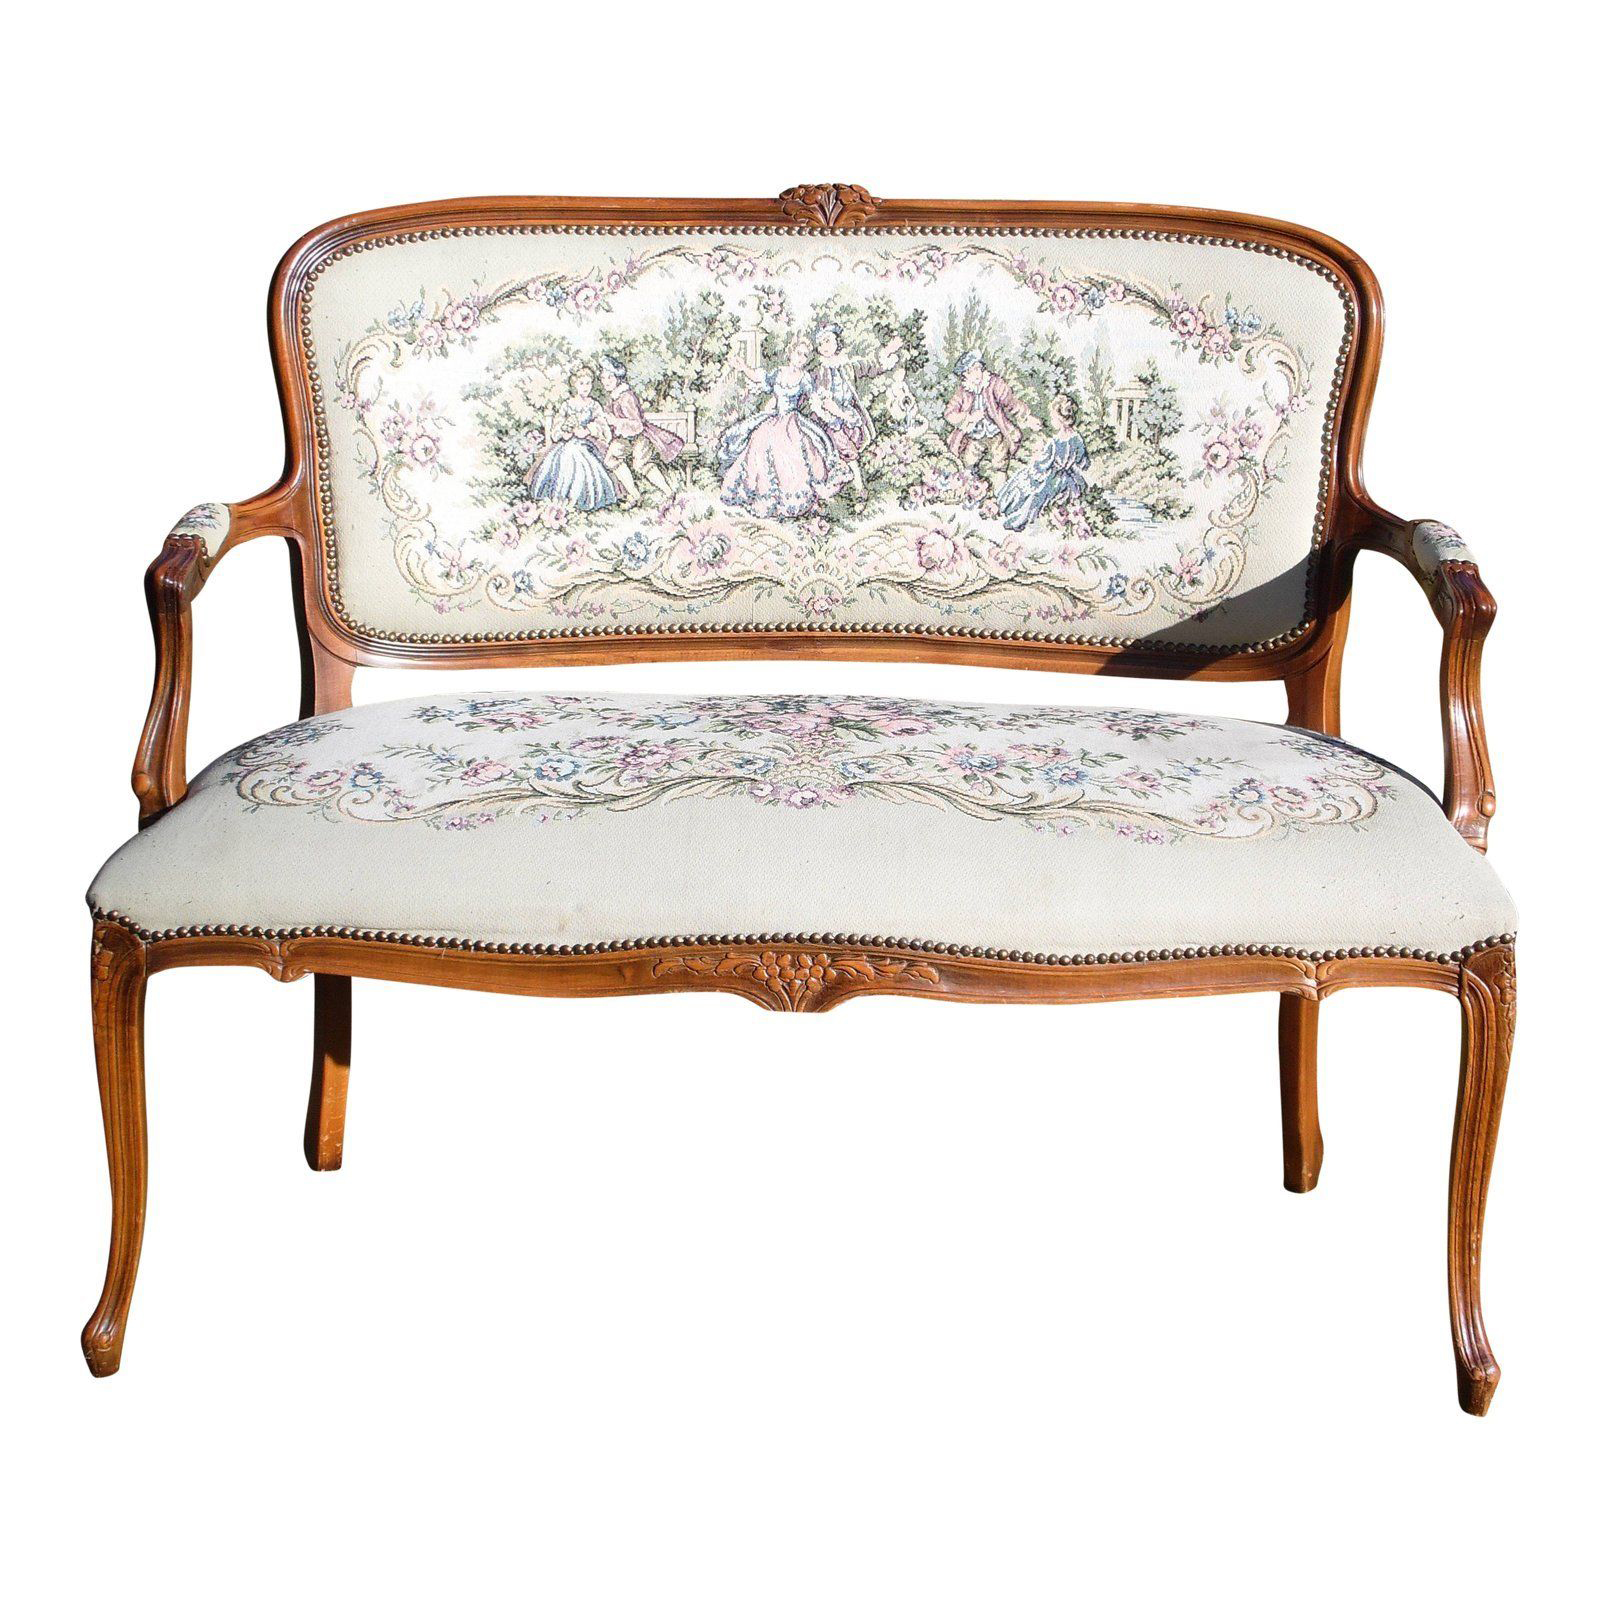 Vintage french provincial louis xv style tapestry settee chateau dax italy